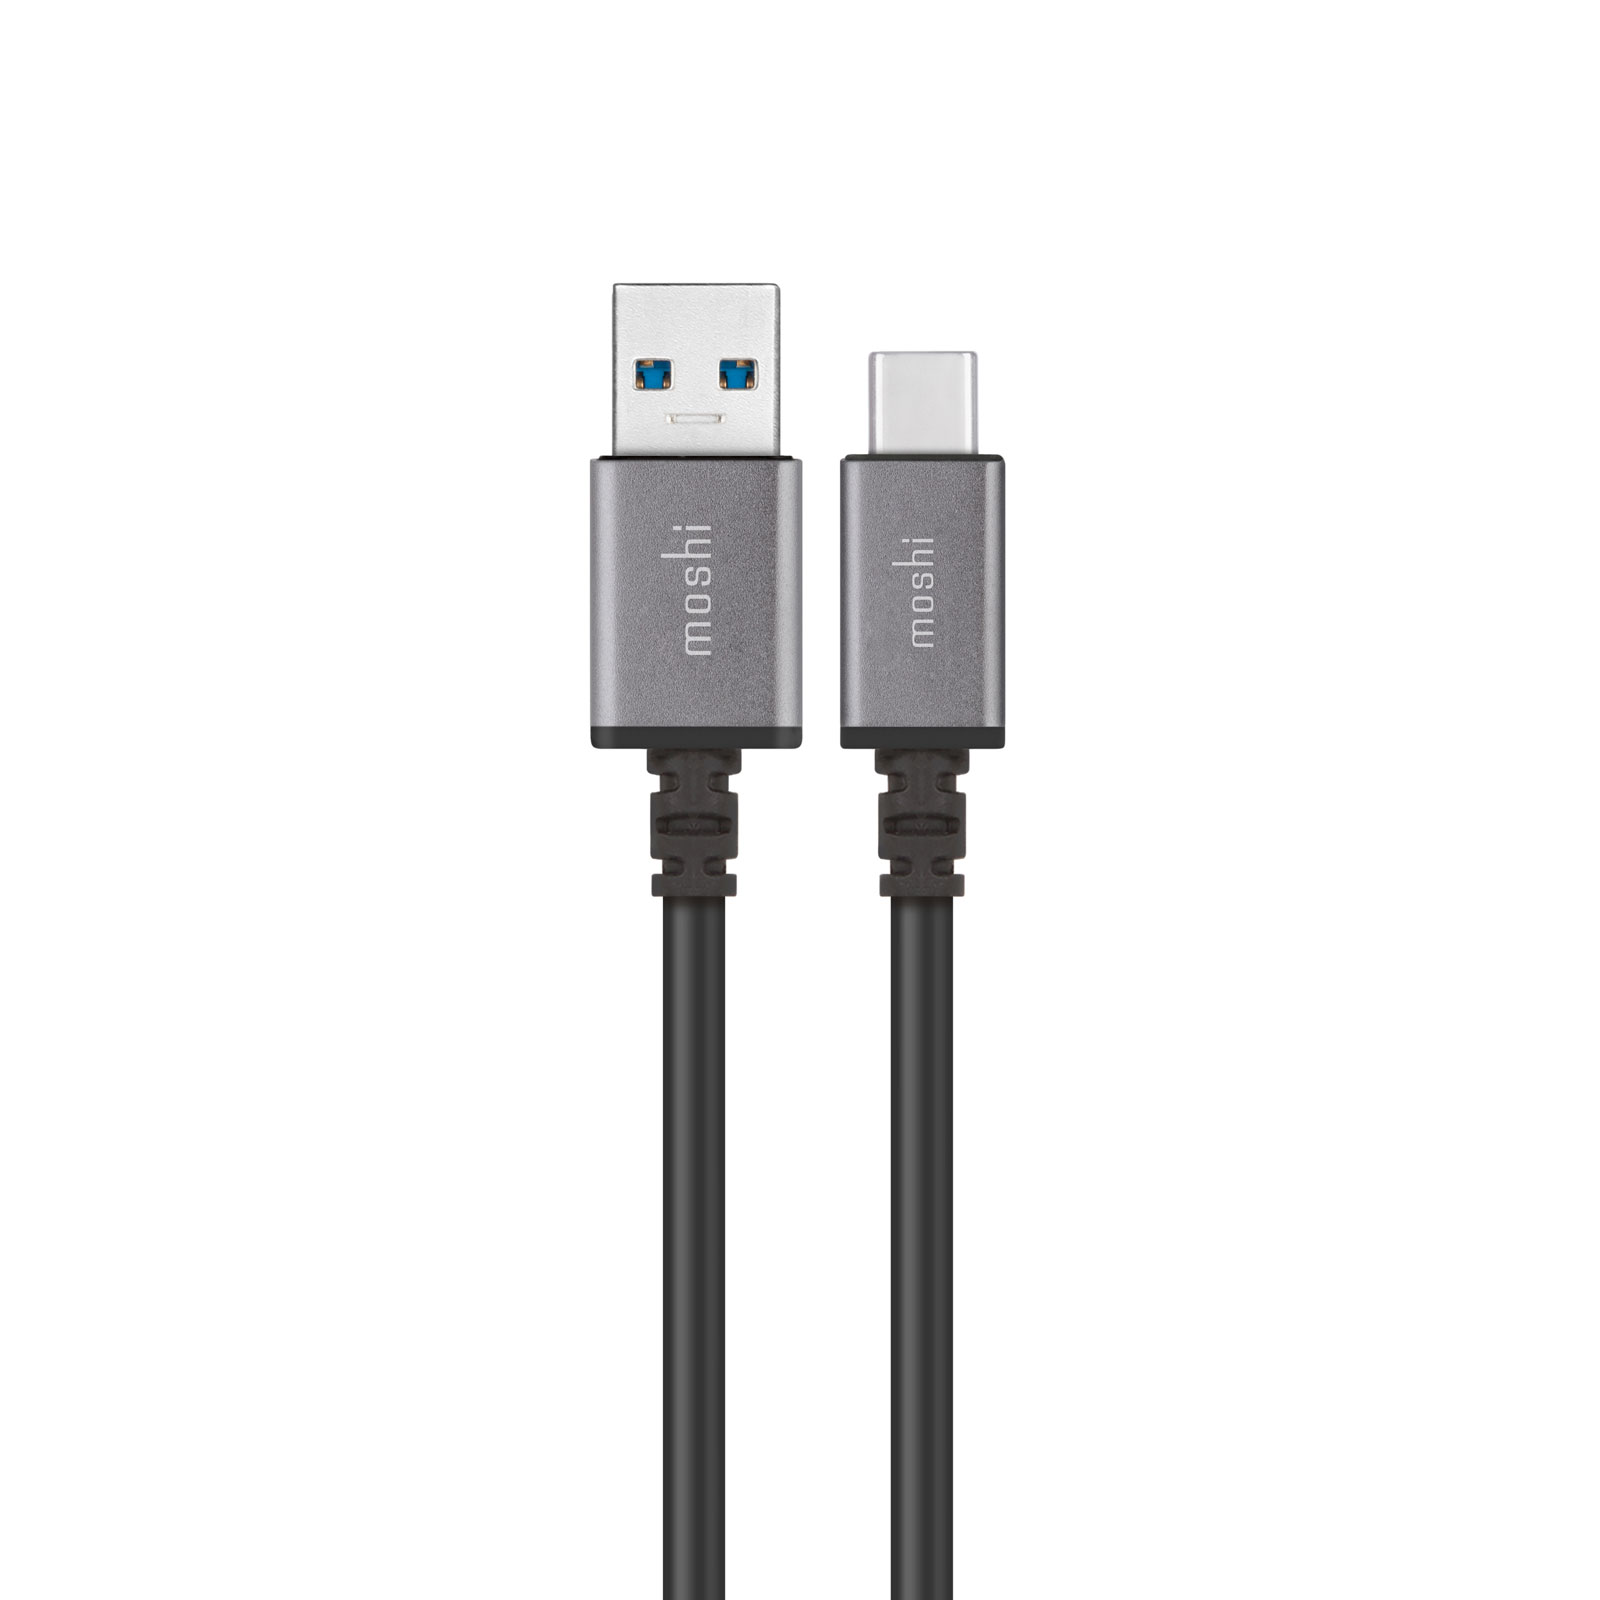 USB-C to USB-A Charge Cable 3.3 ft (1 m)-2-thumbnail